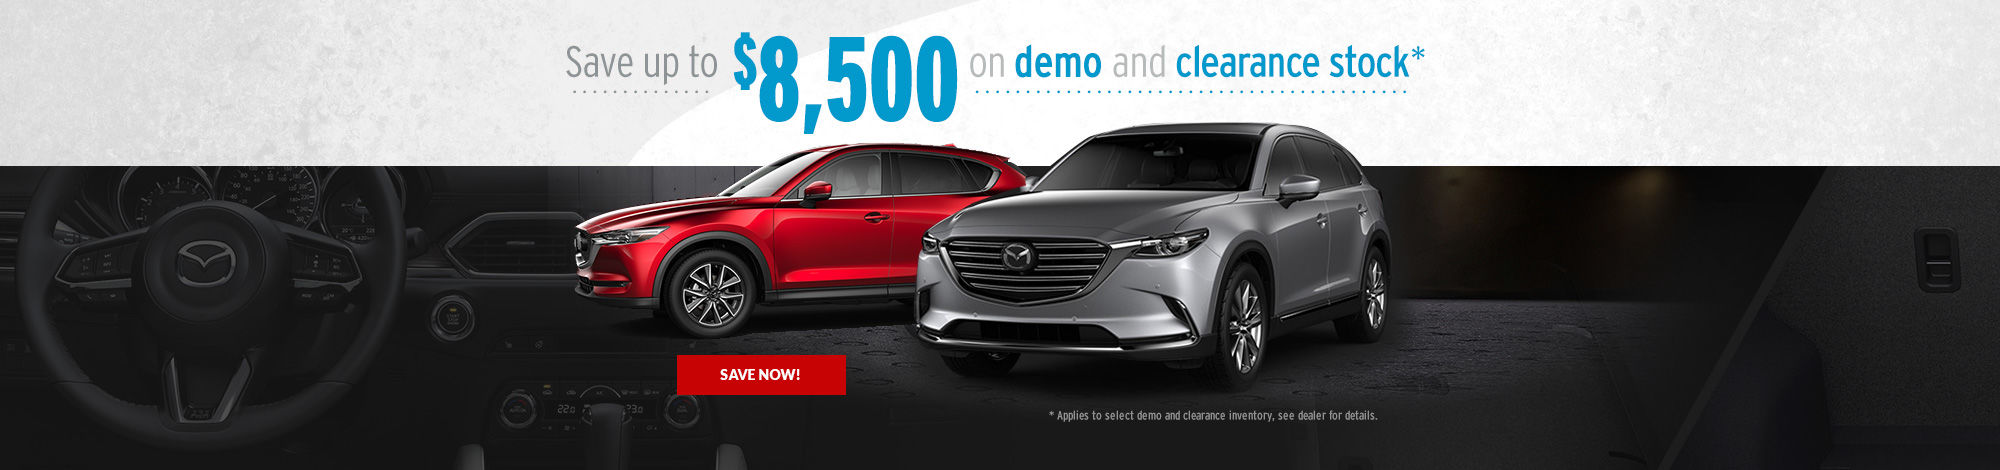 $8,500 in Savings on Demo and Clearance Stock!